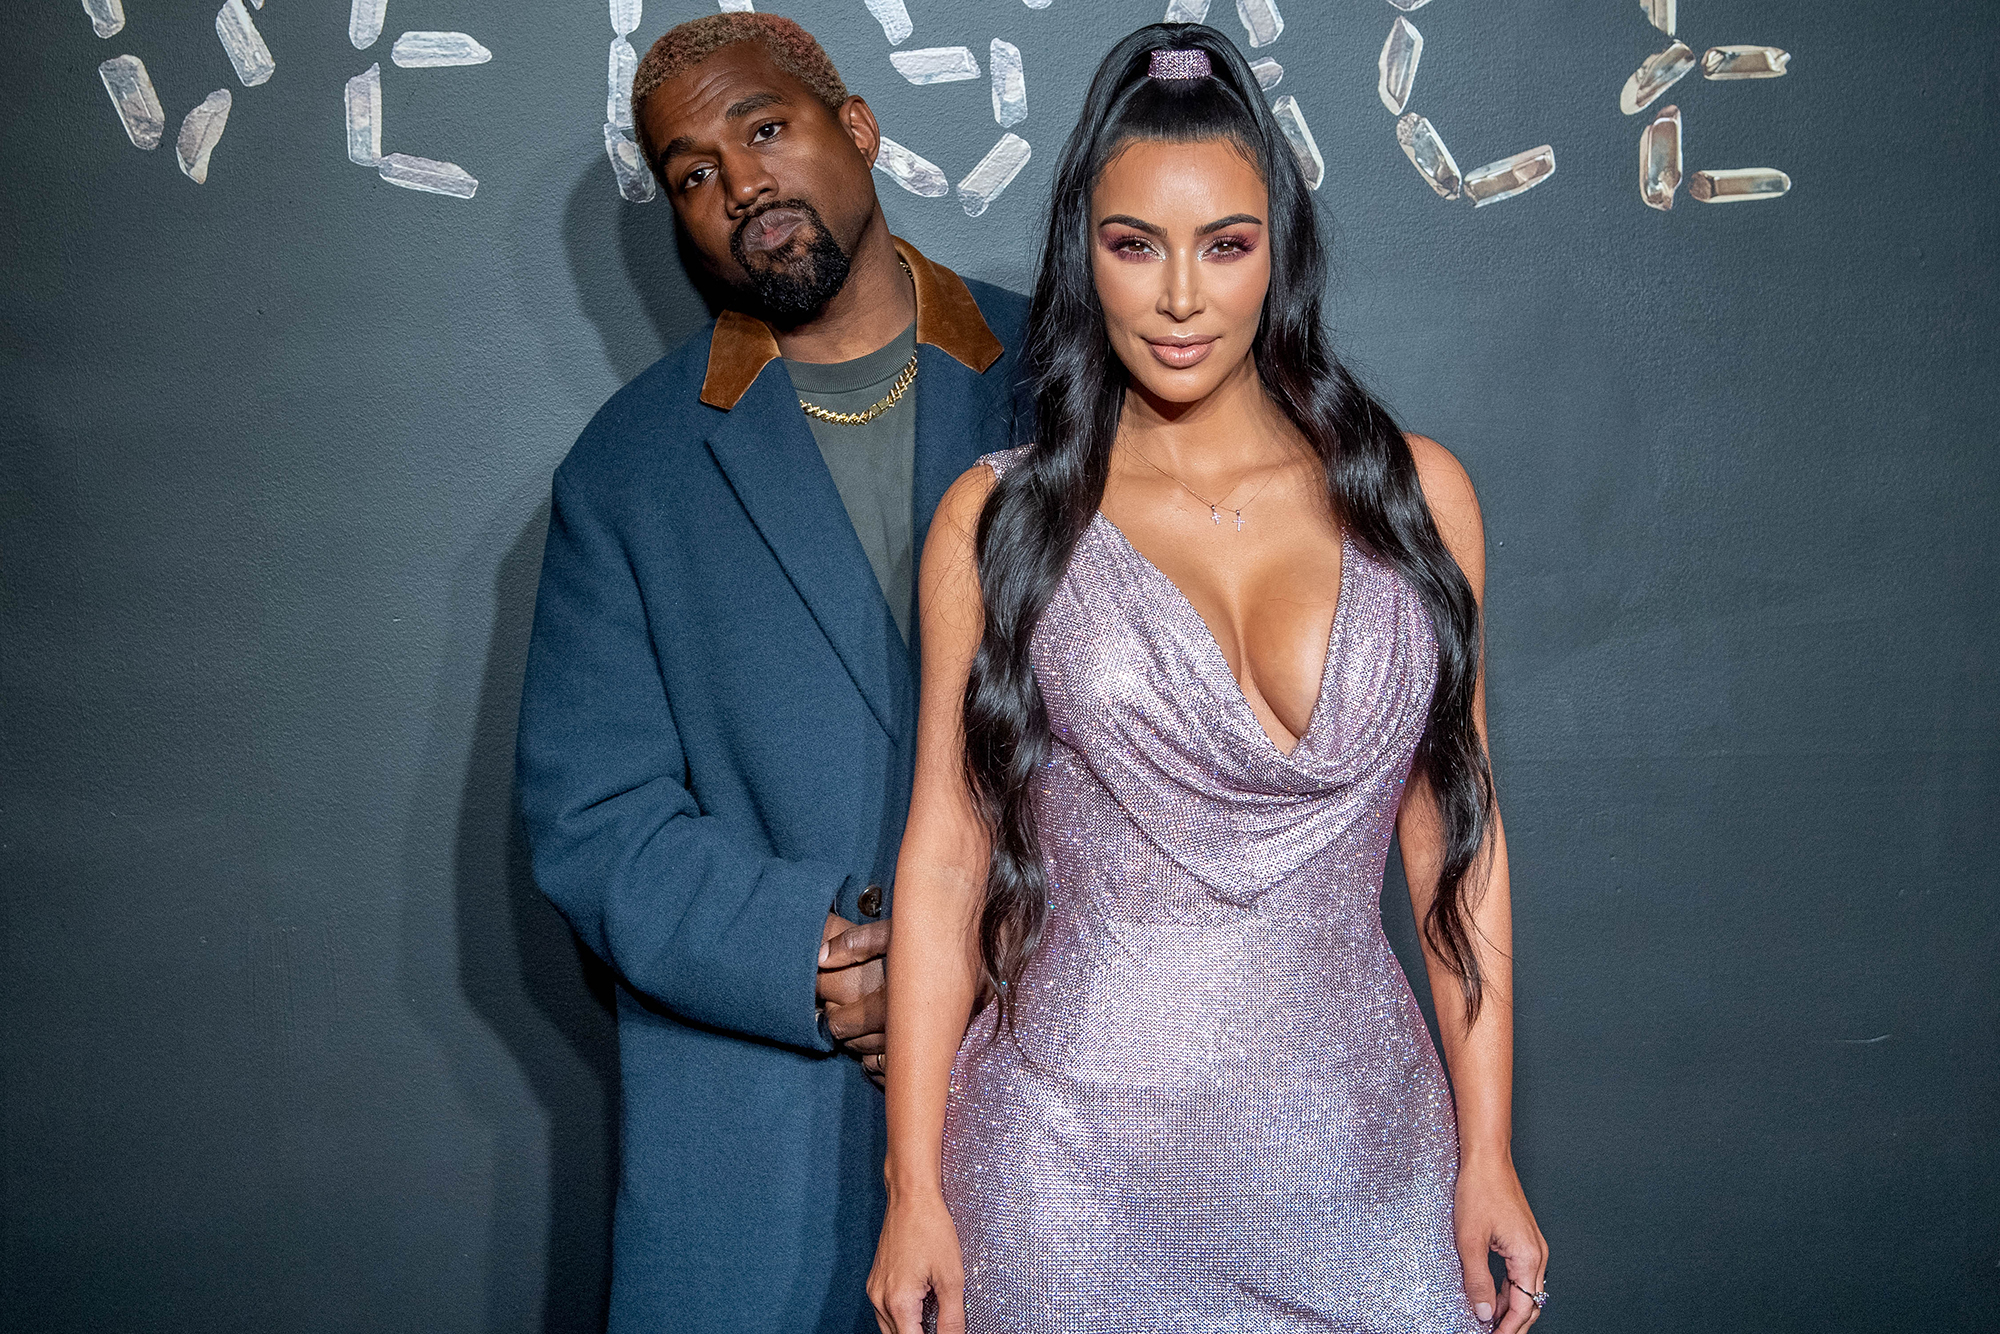 Kim Kardashian Says Kanye Wests People Called Her To Attend His 2007 MTV Video Music Awards Performance